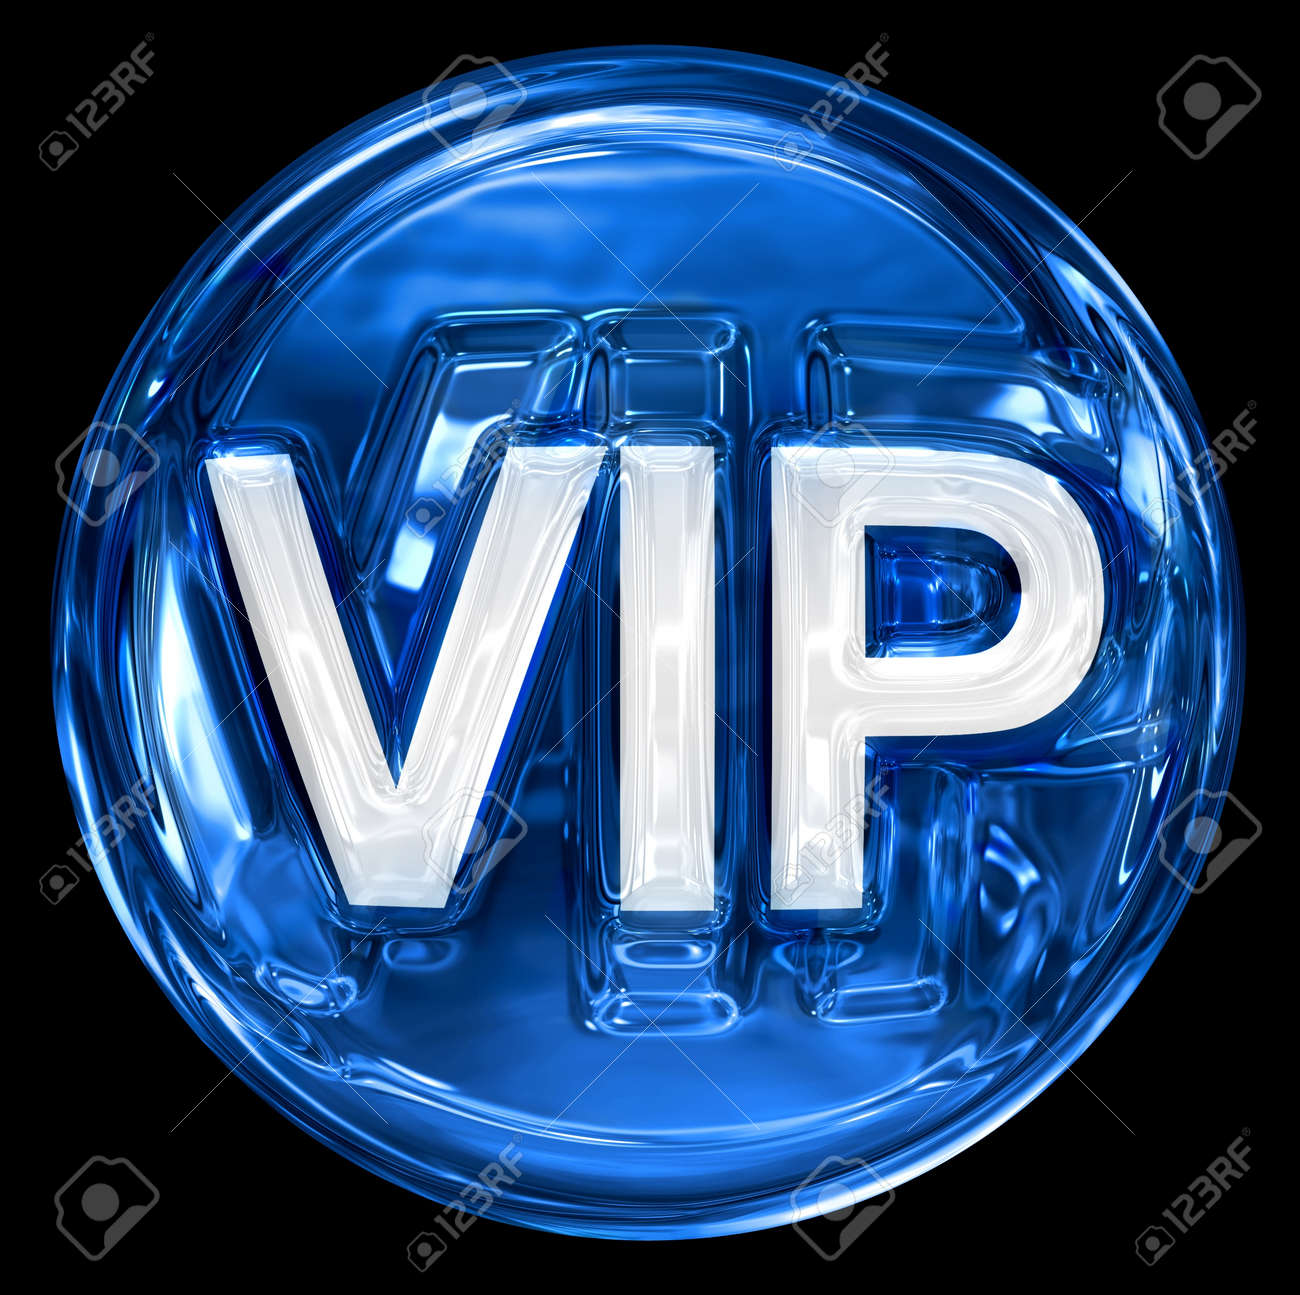 VIP icon blue, isolated on black background. Stock Photo - 8832020